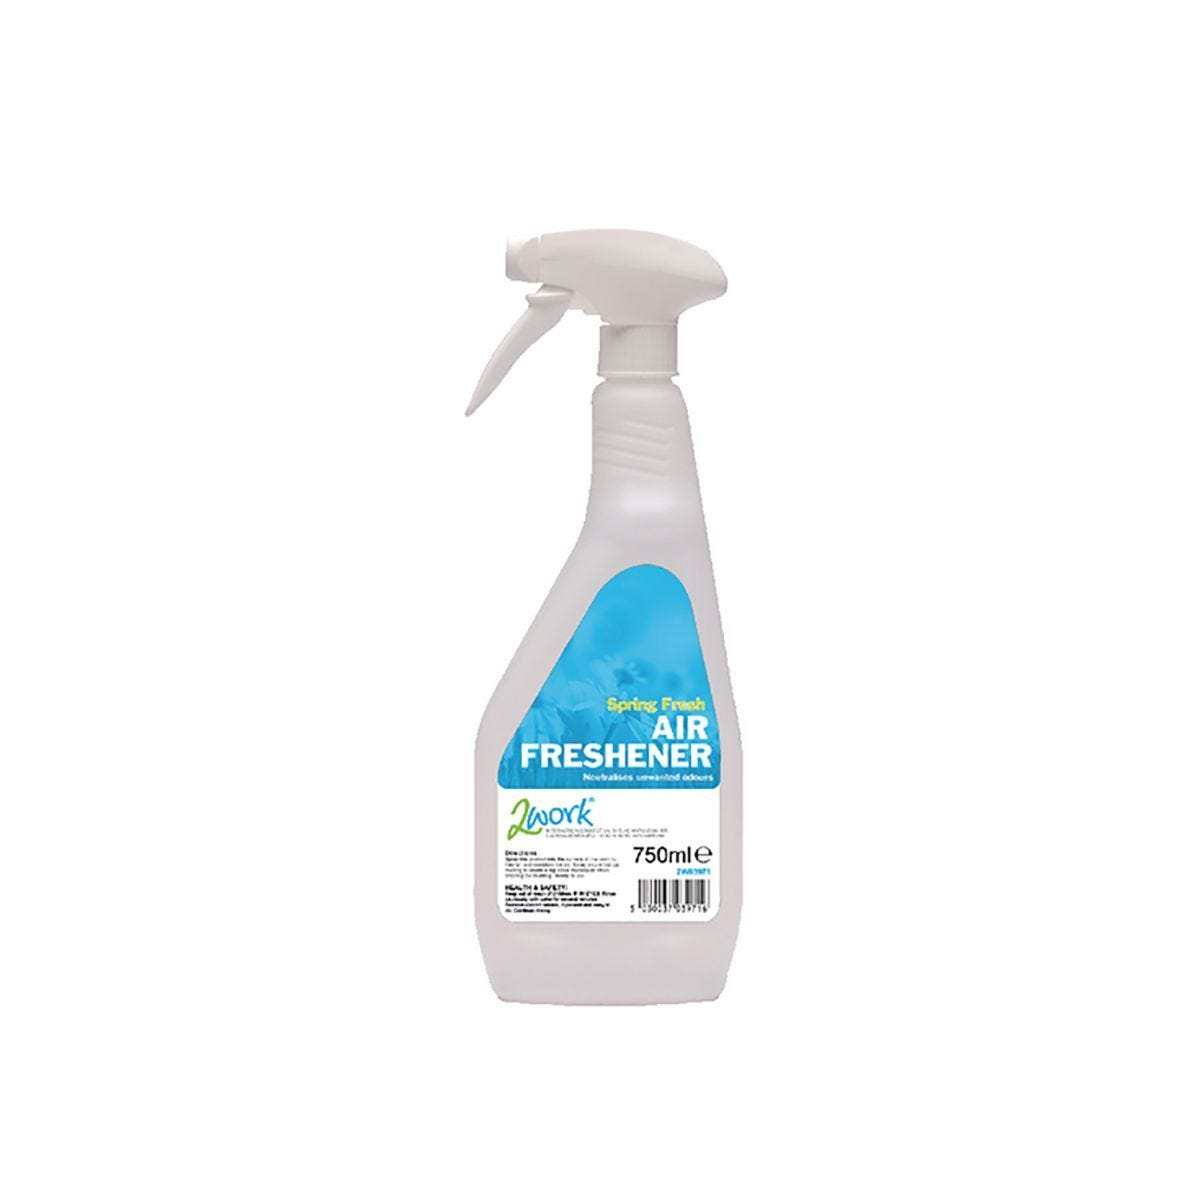 2Work Air Freshener Non Aerosol 750ml